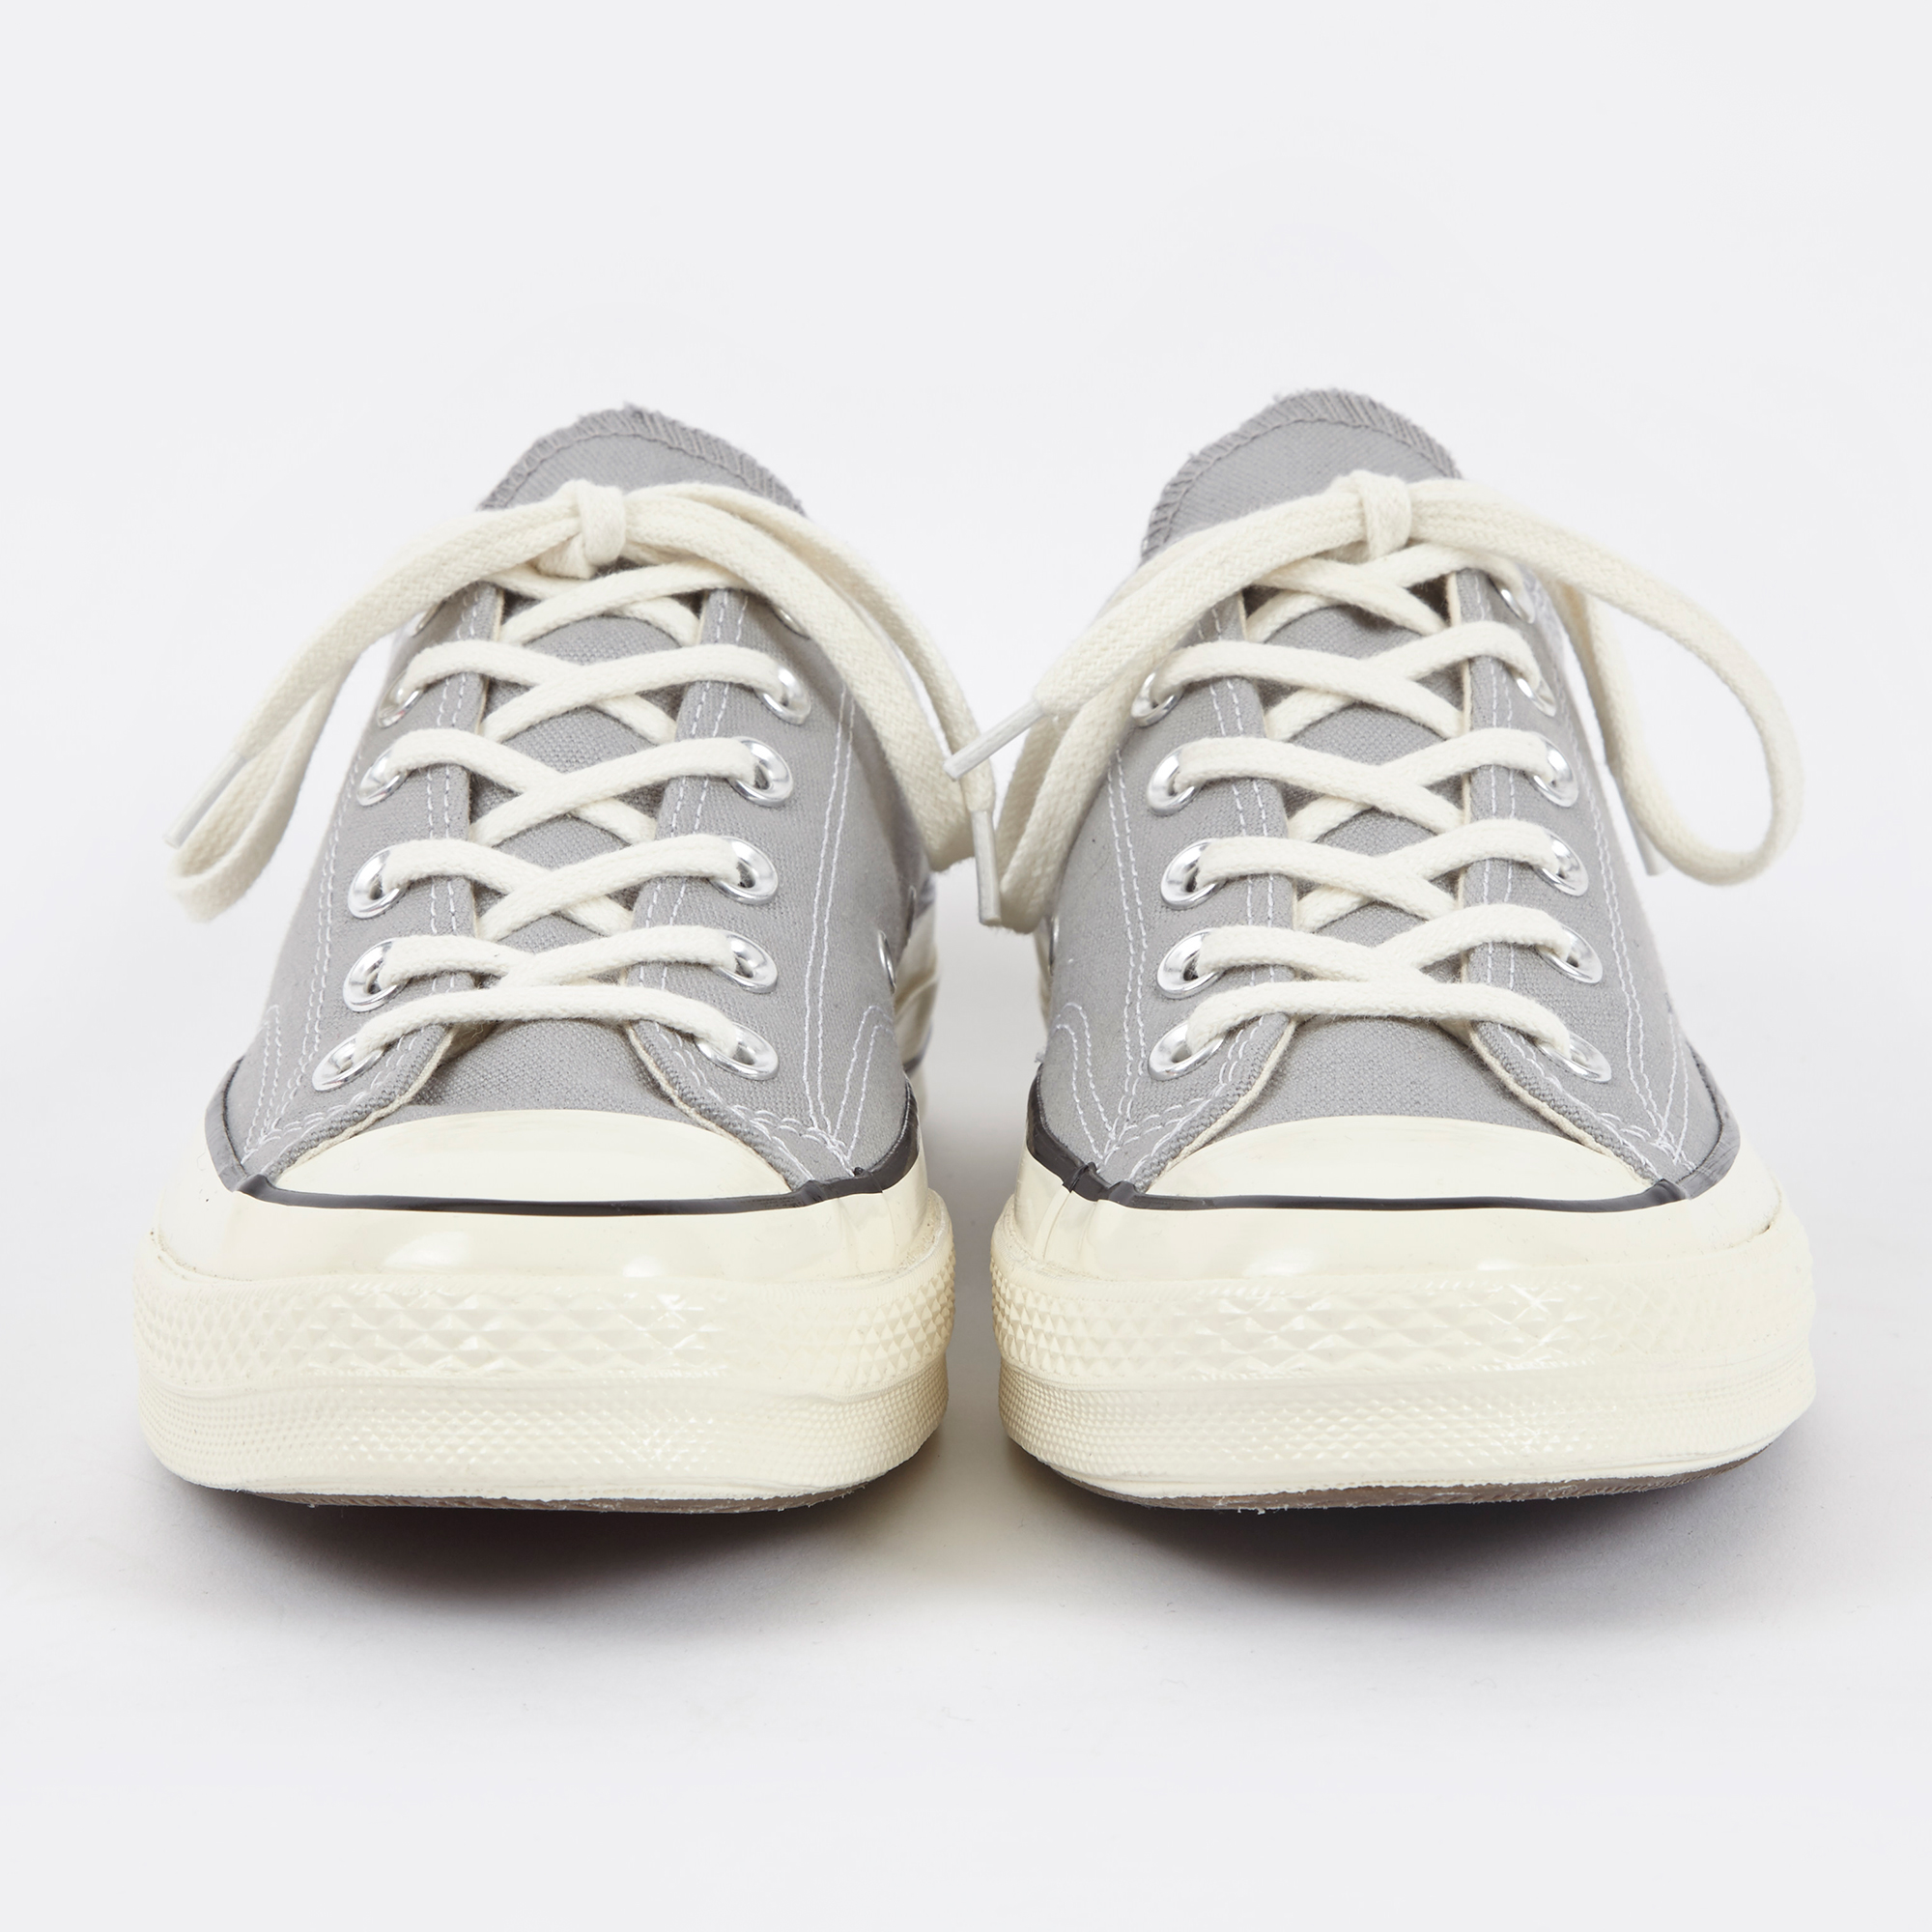 441d404d2313 Converse 1970s Chuck Taylor All Star Ox - Wild Dove